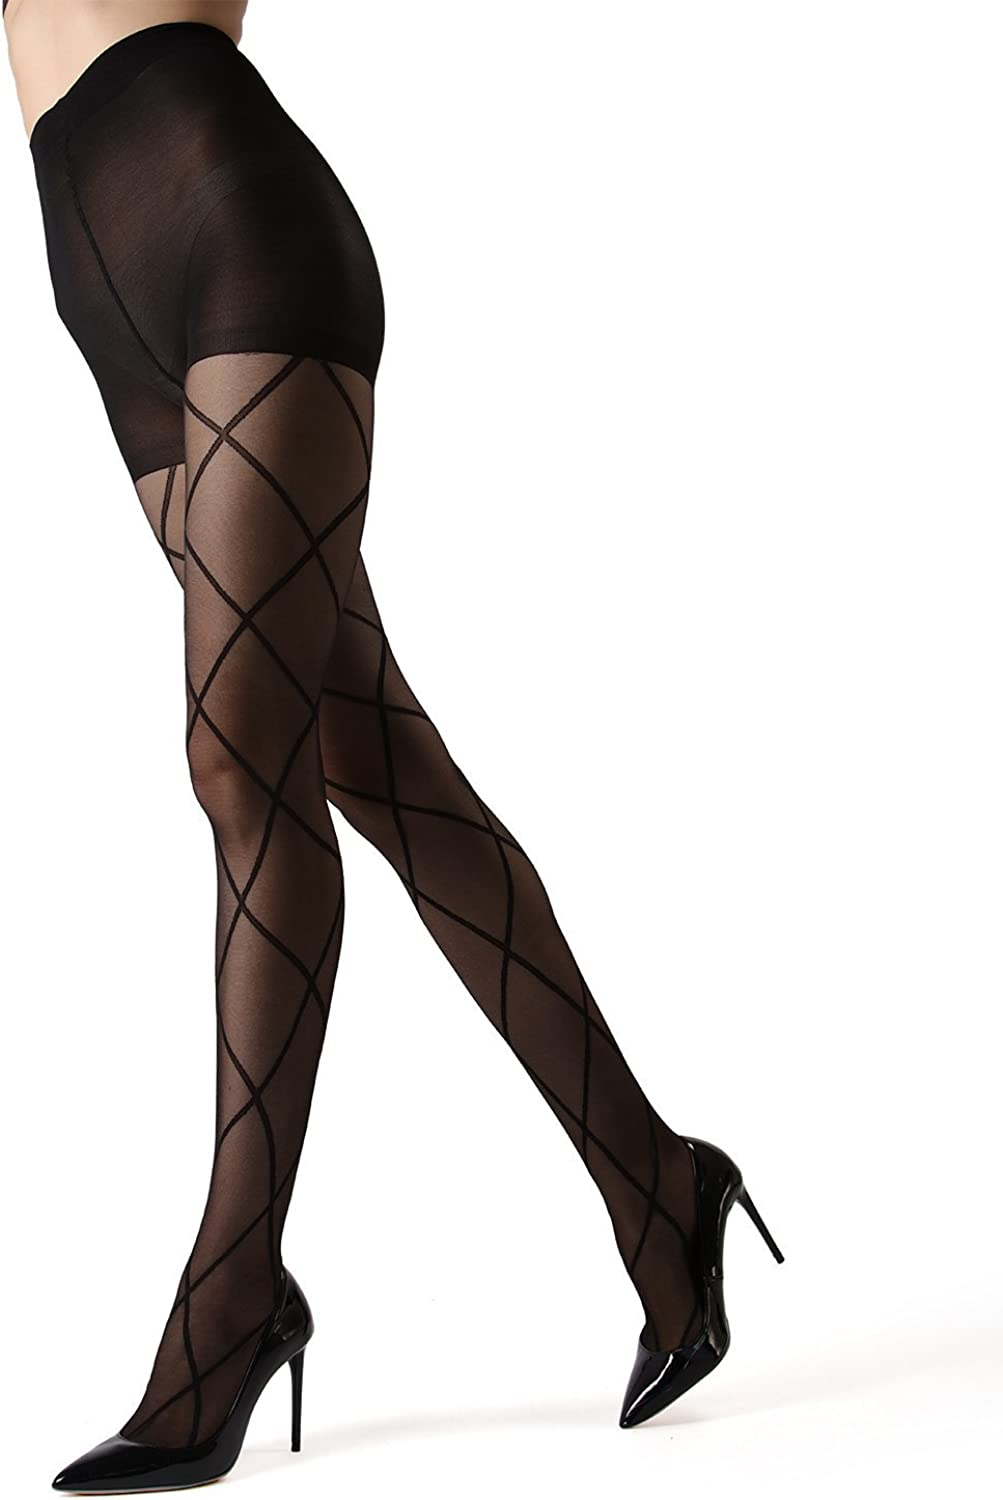 Womens Luxury Fashion Floral Print Sheer Tights for Girls 20 Denier Size S M L